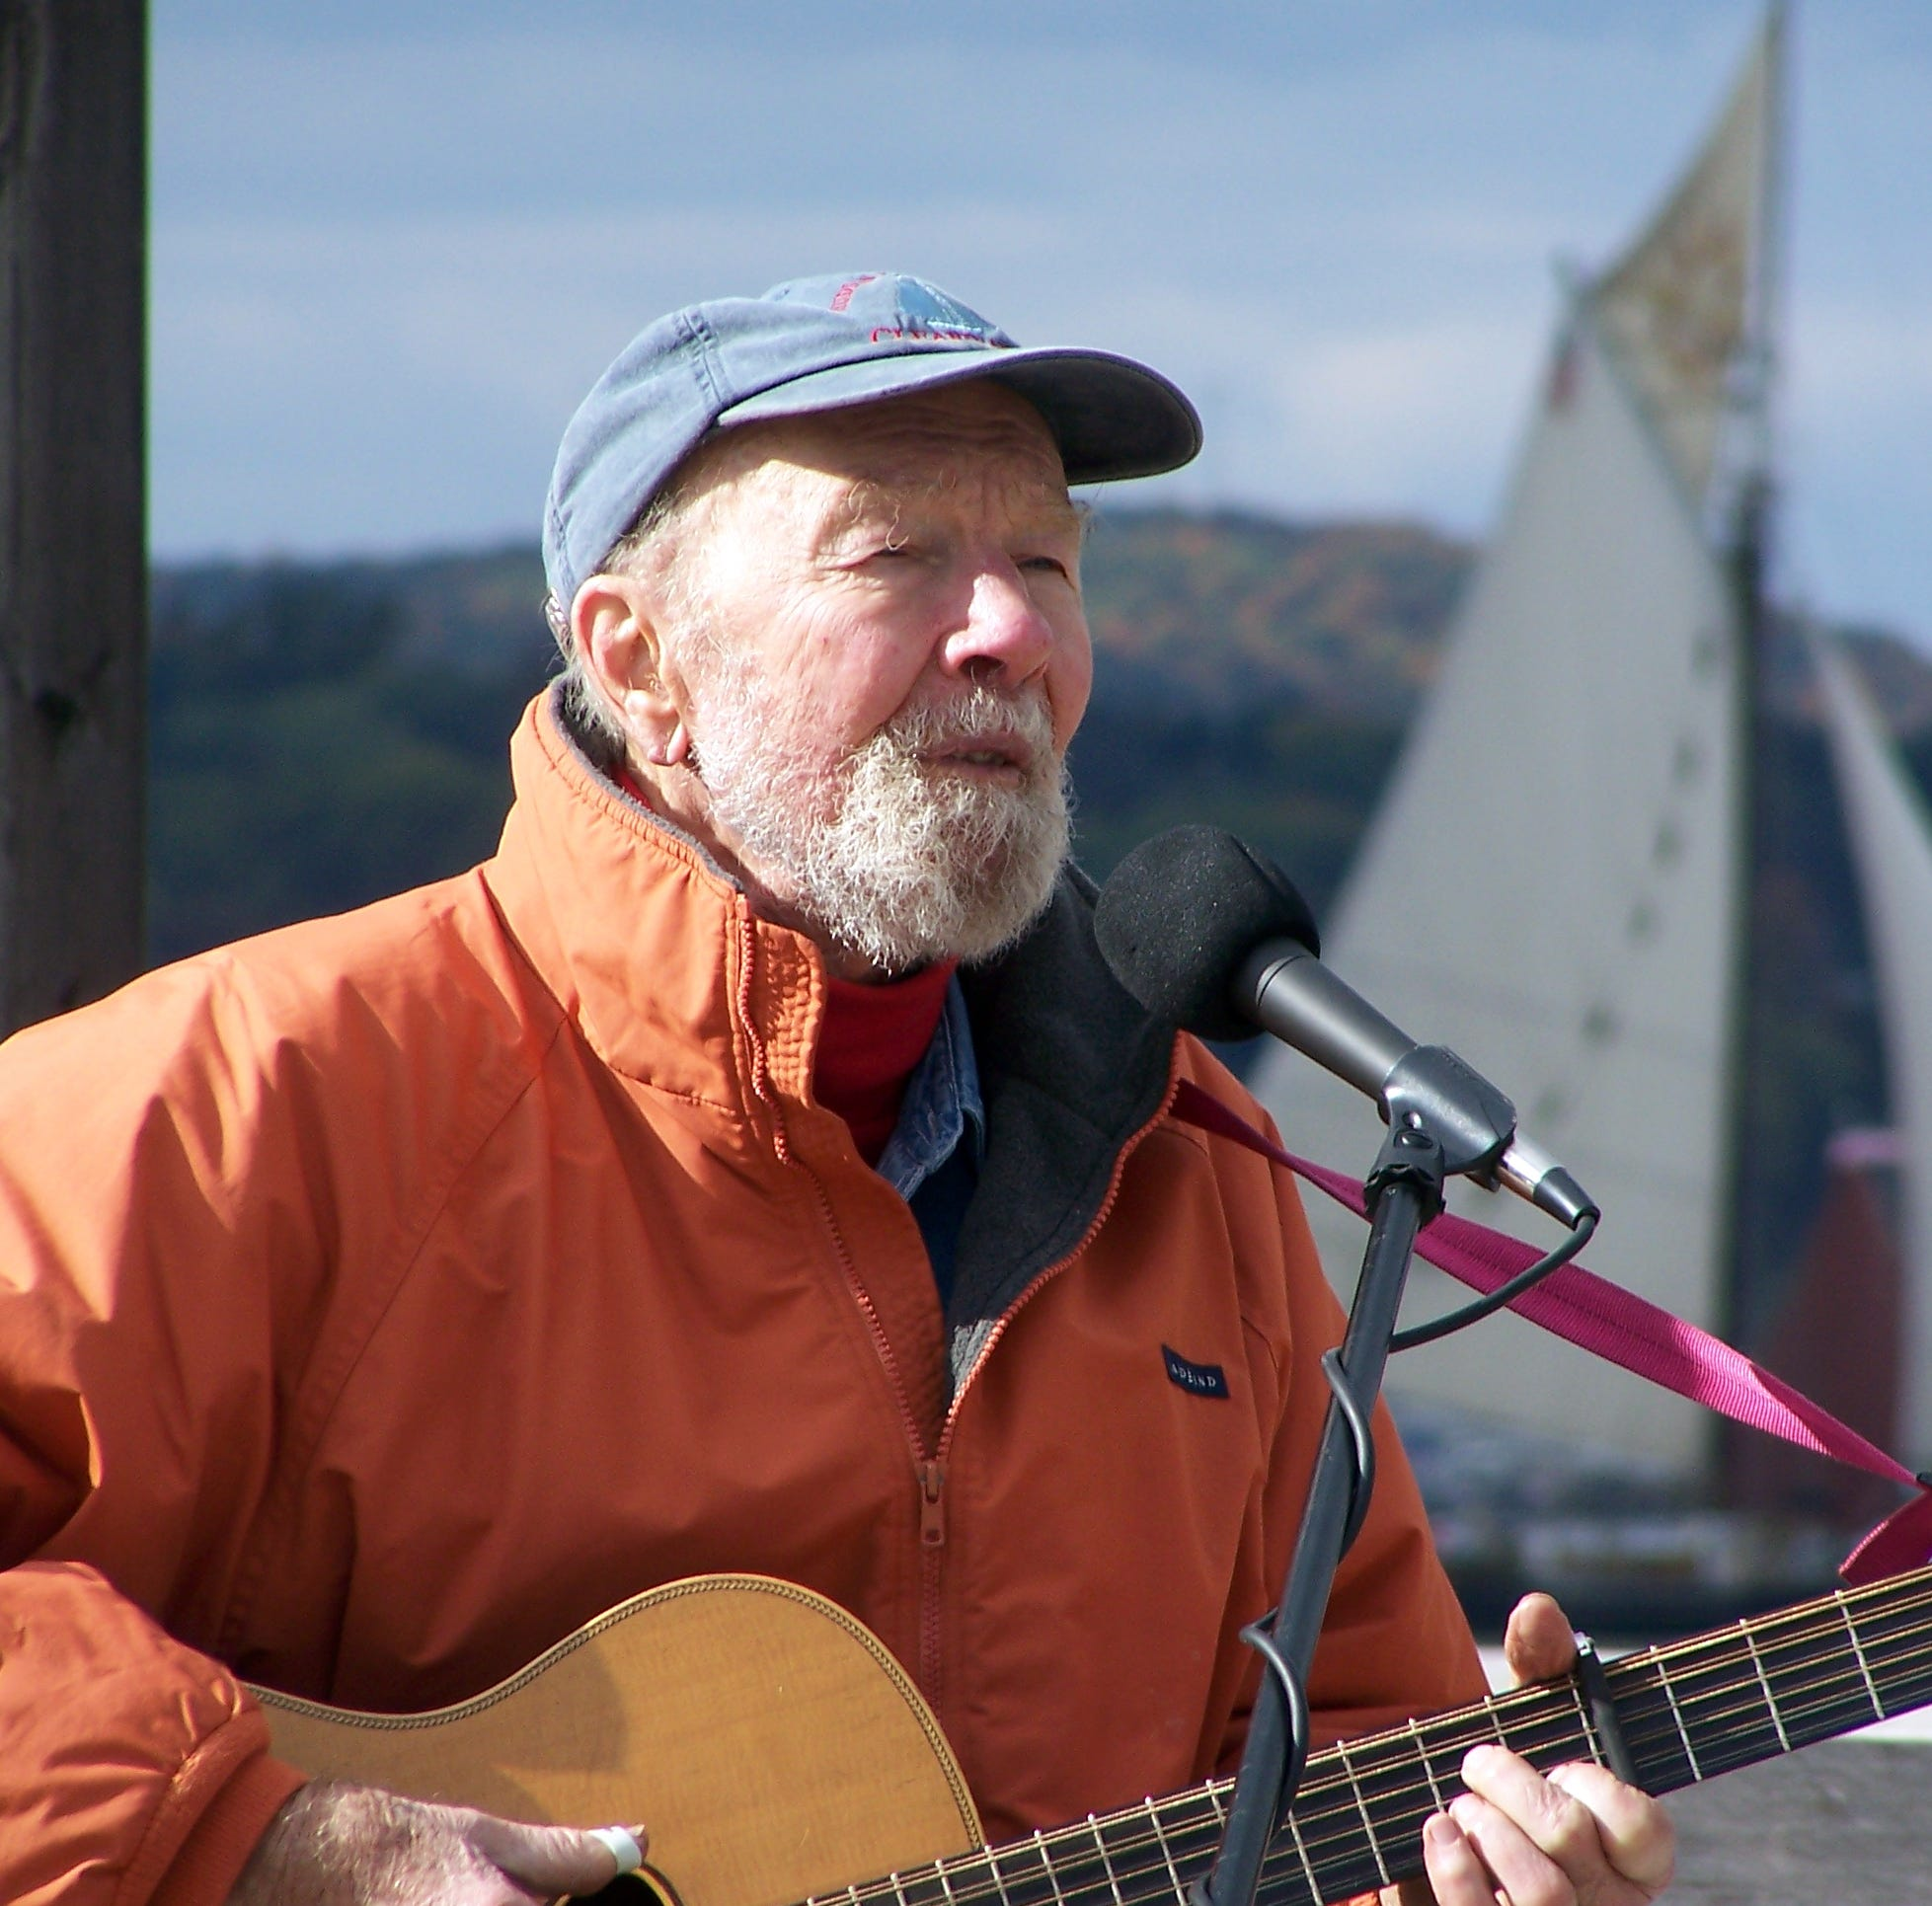 Pete Seeger: Bardavon, Vanaver caravan to mark folk singer's 100th birthday